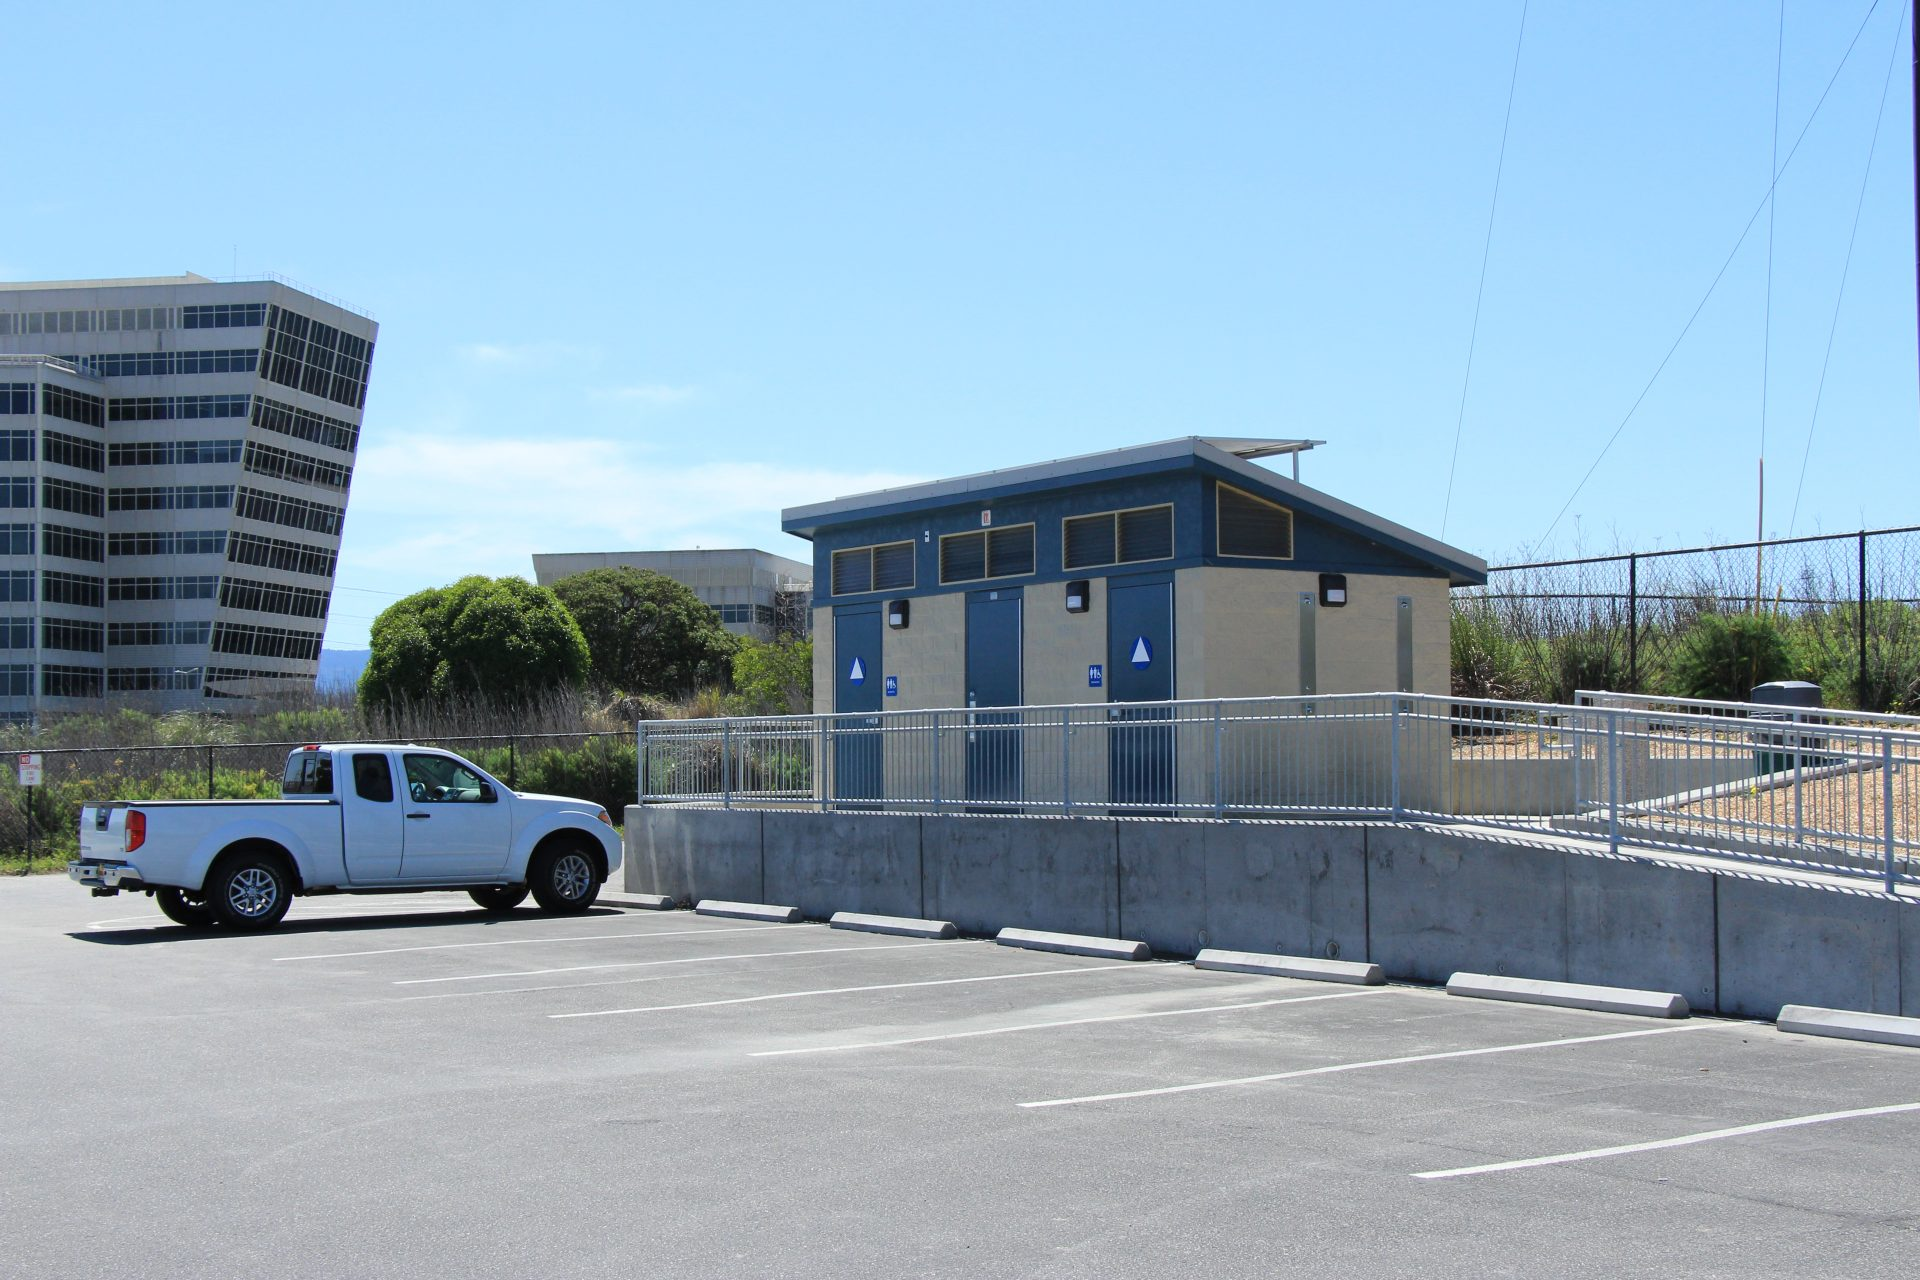 Empty parking lot with ramp up to building with bathrooms